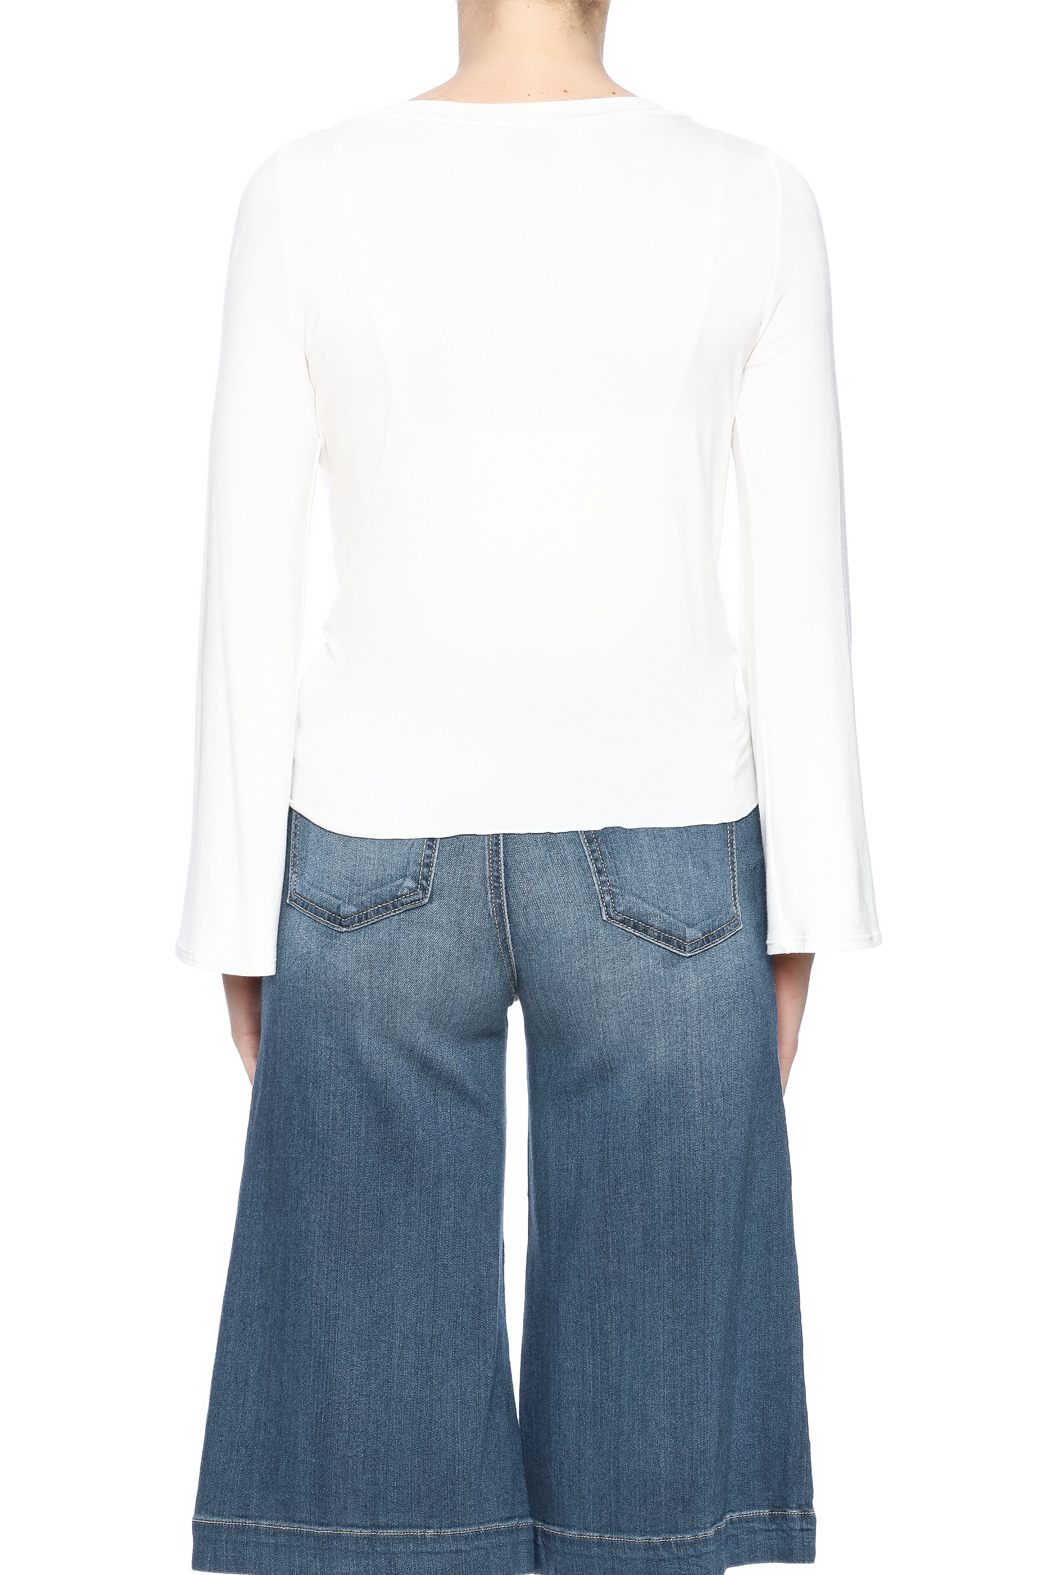 Clea Ray Perfect Wrap Top - Back Cropped Image